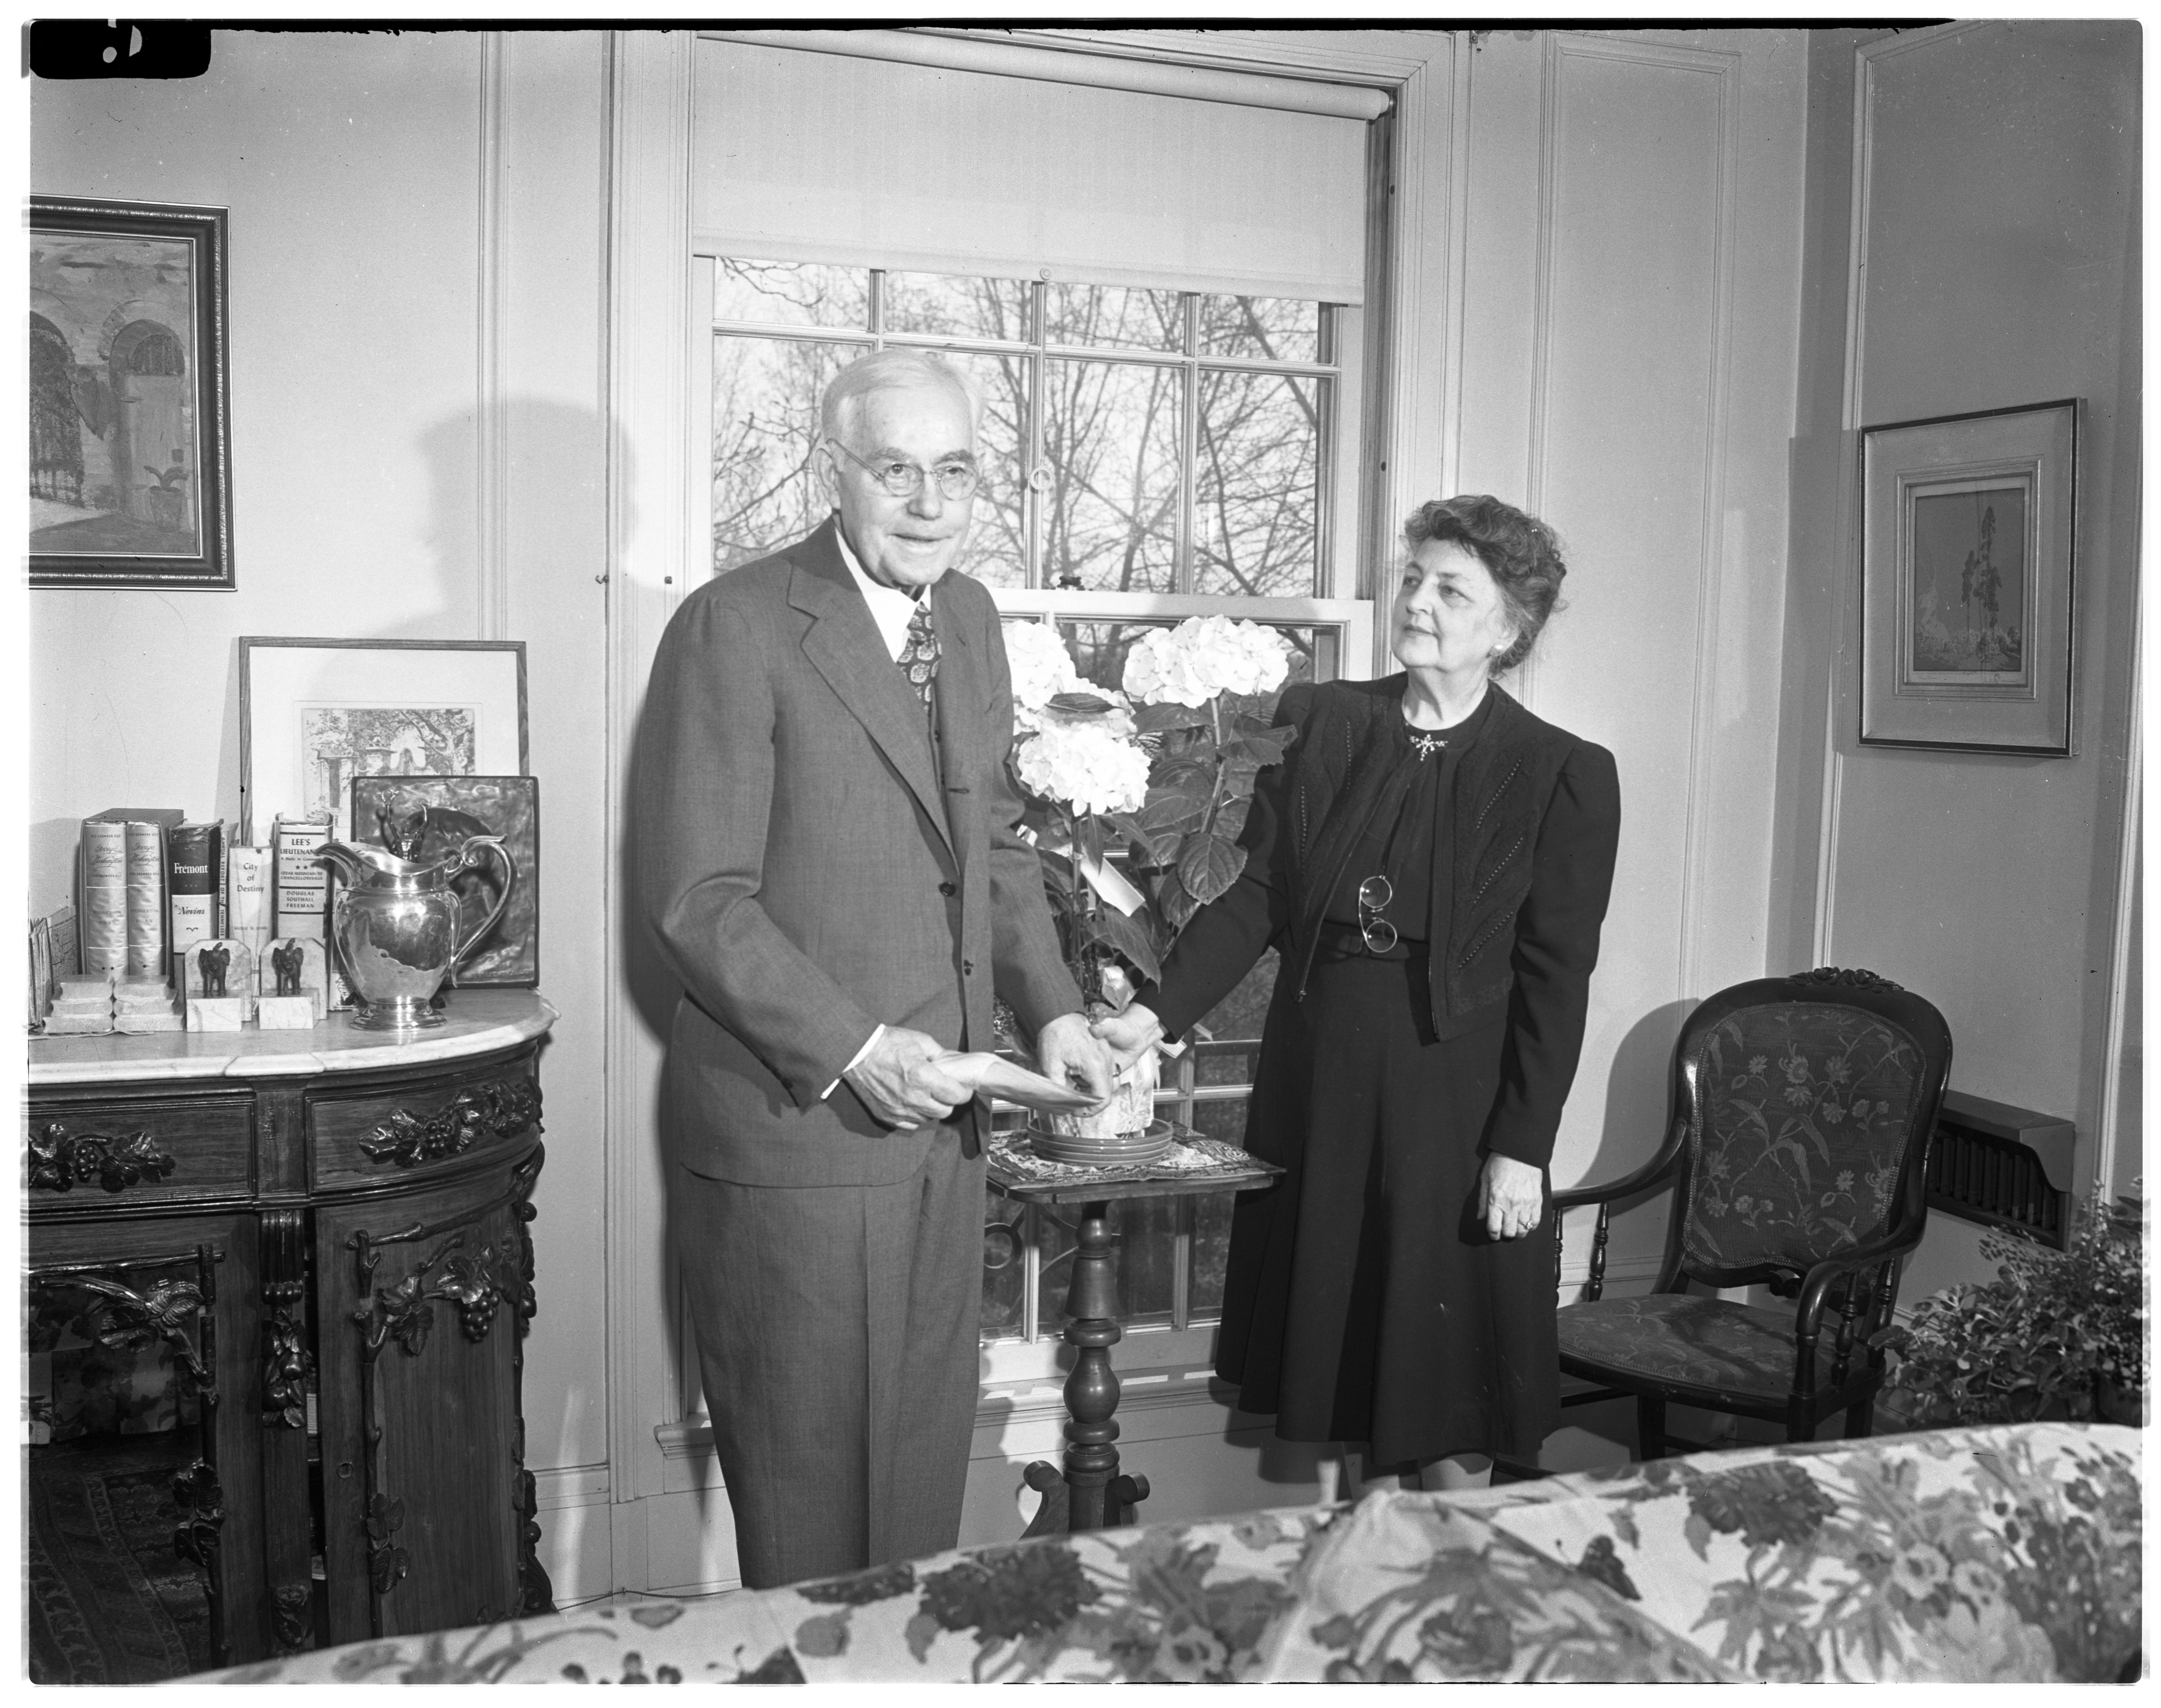 Mr. and Mrs. Fielding Harris Yost on his 75th Birthday - April 30, 1946 image